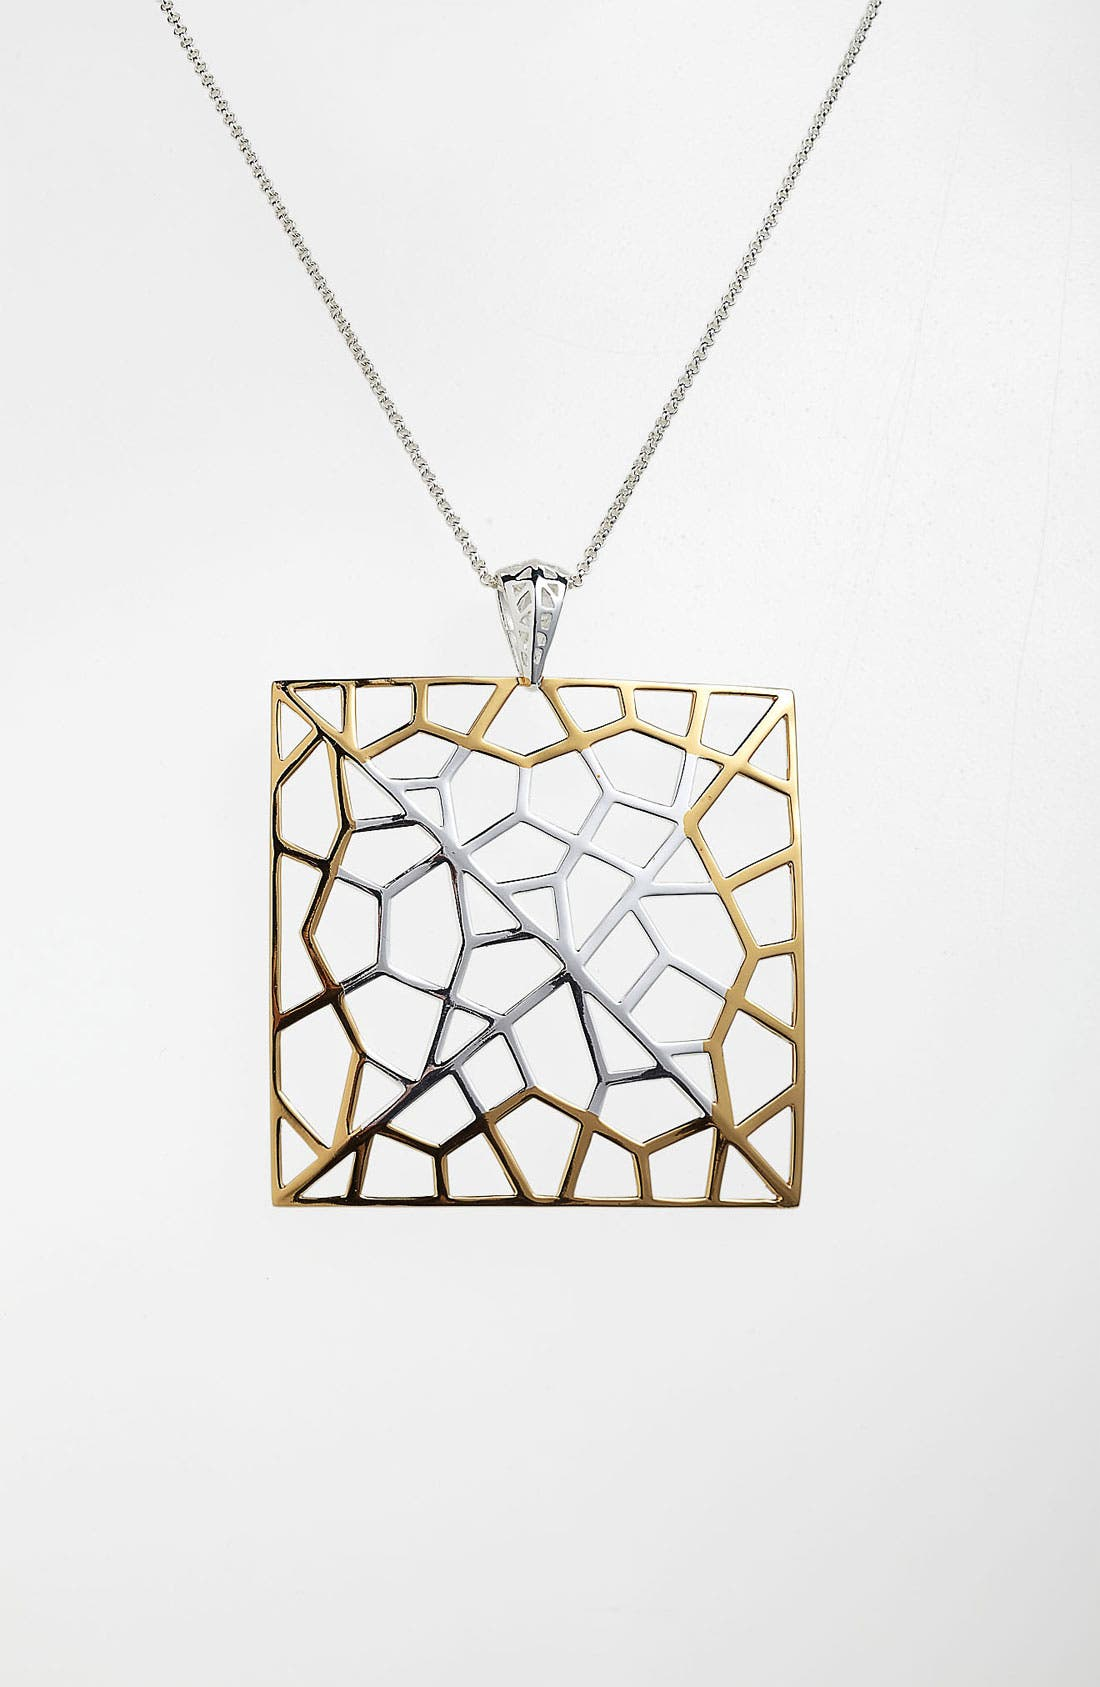 Alternate Image 1 Selected - Argento Vivo 'Prism' Large Square Pendant Necklace